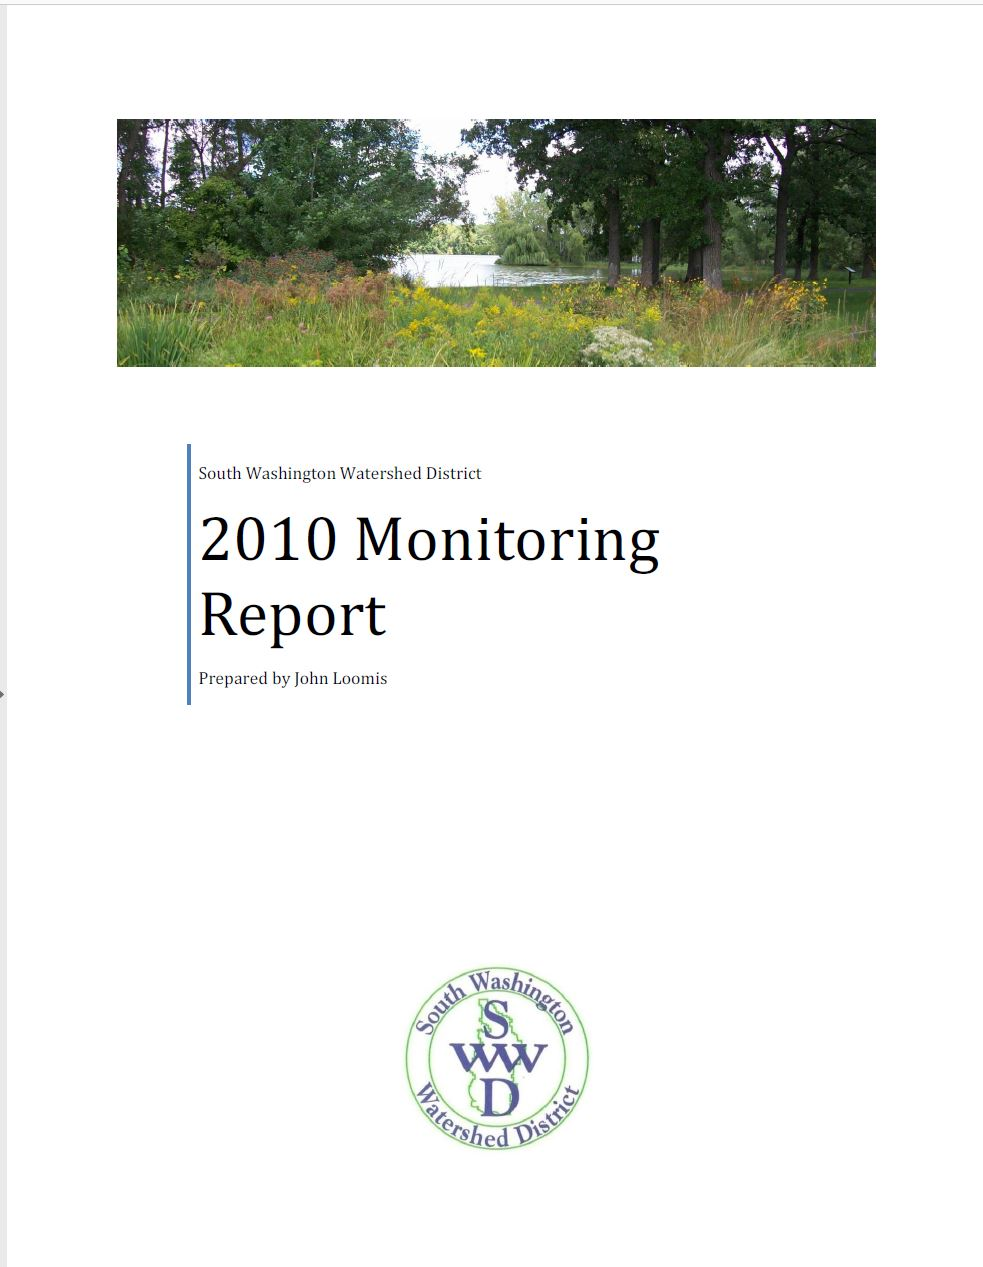 South Washington Watershed District 2010 Monitoring Report